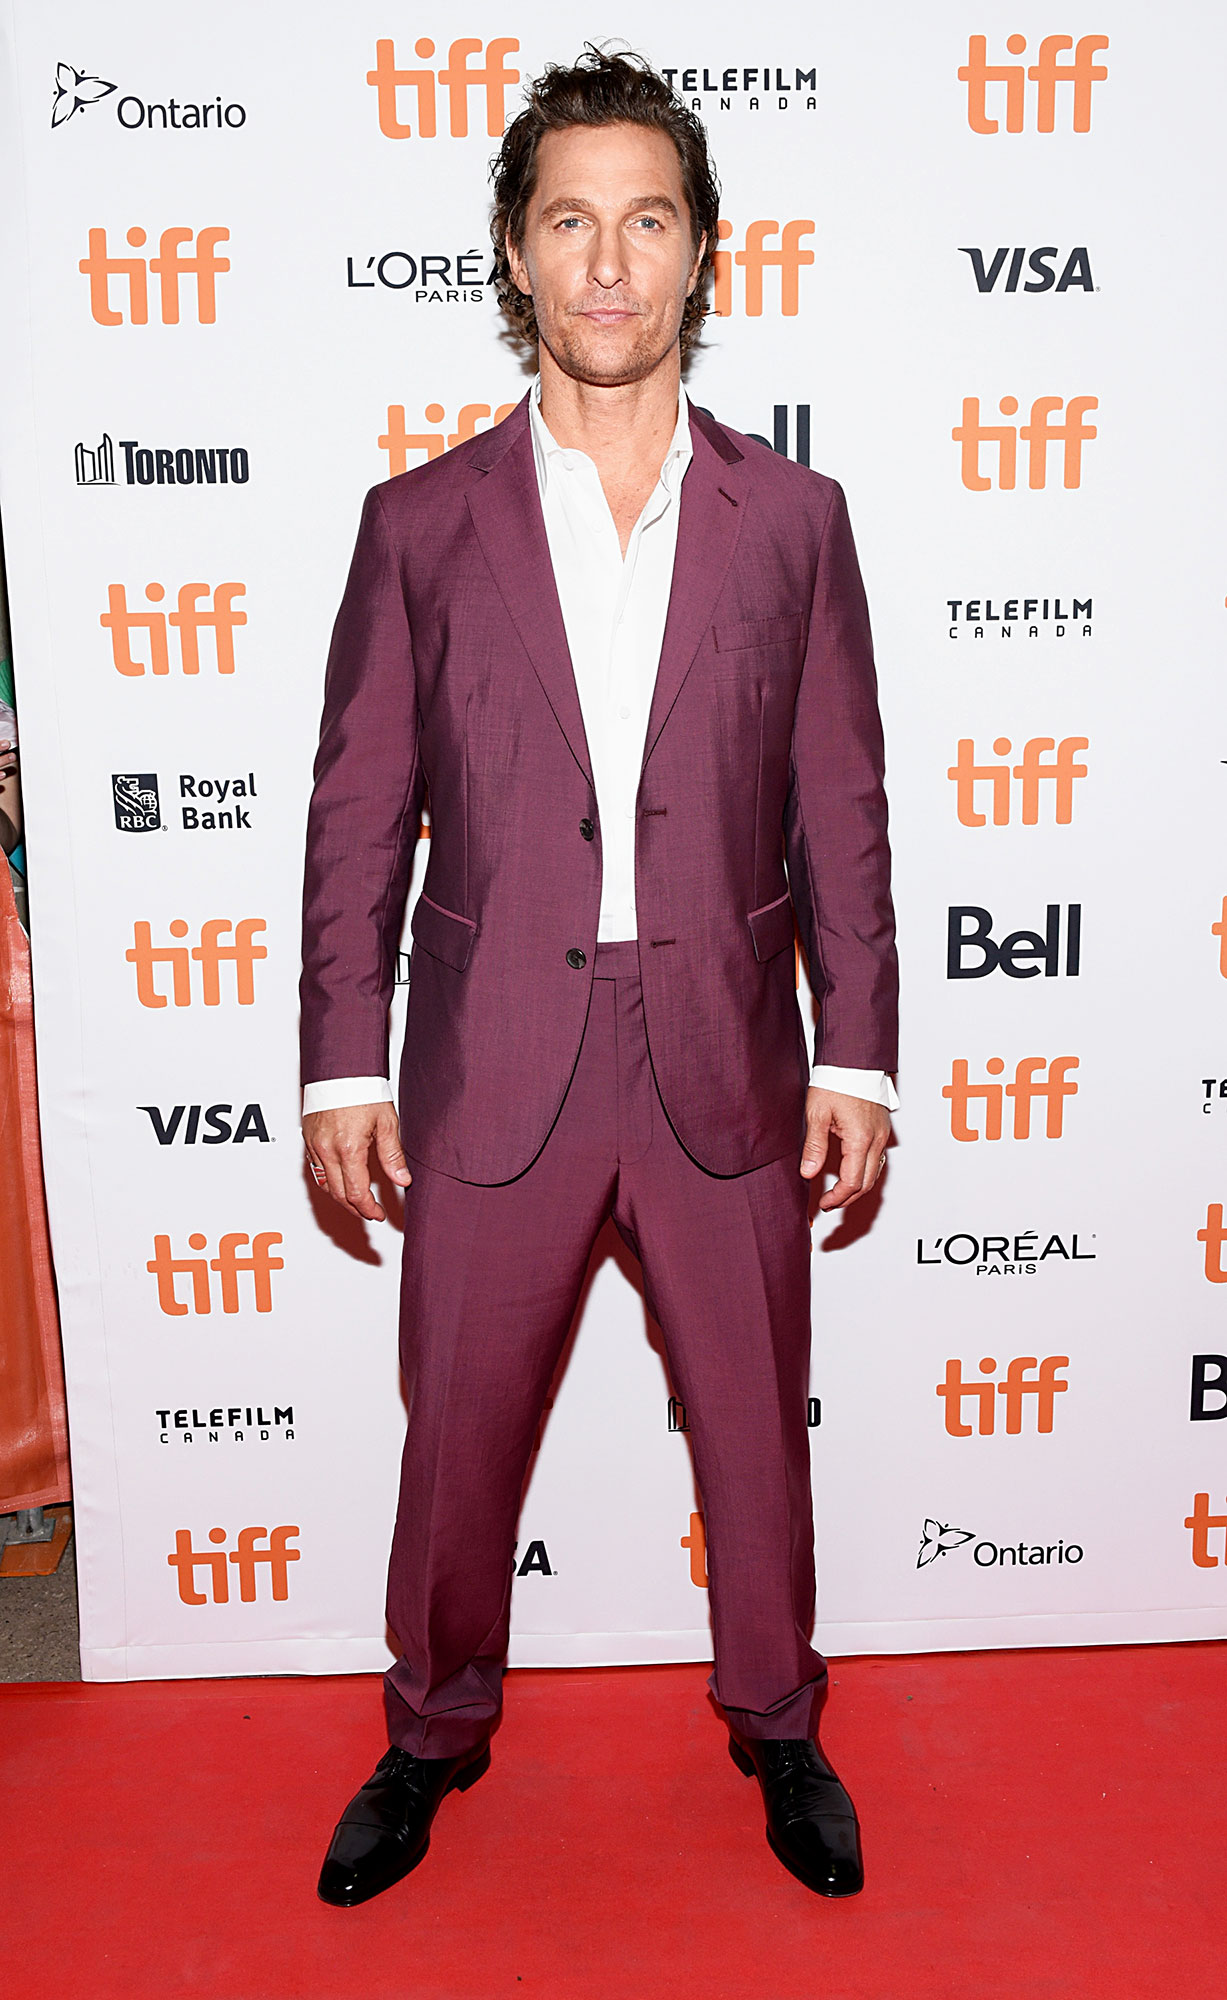 Matthew McConaughey - In a $795 wool mohair Strong Suit on Sept. 7.